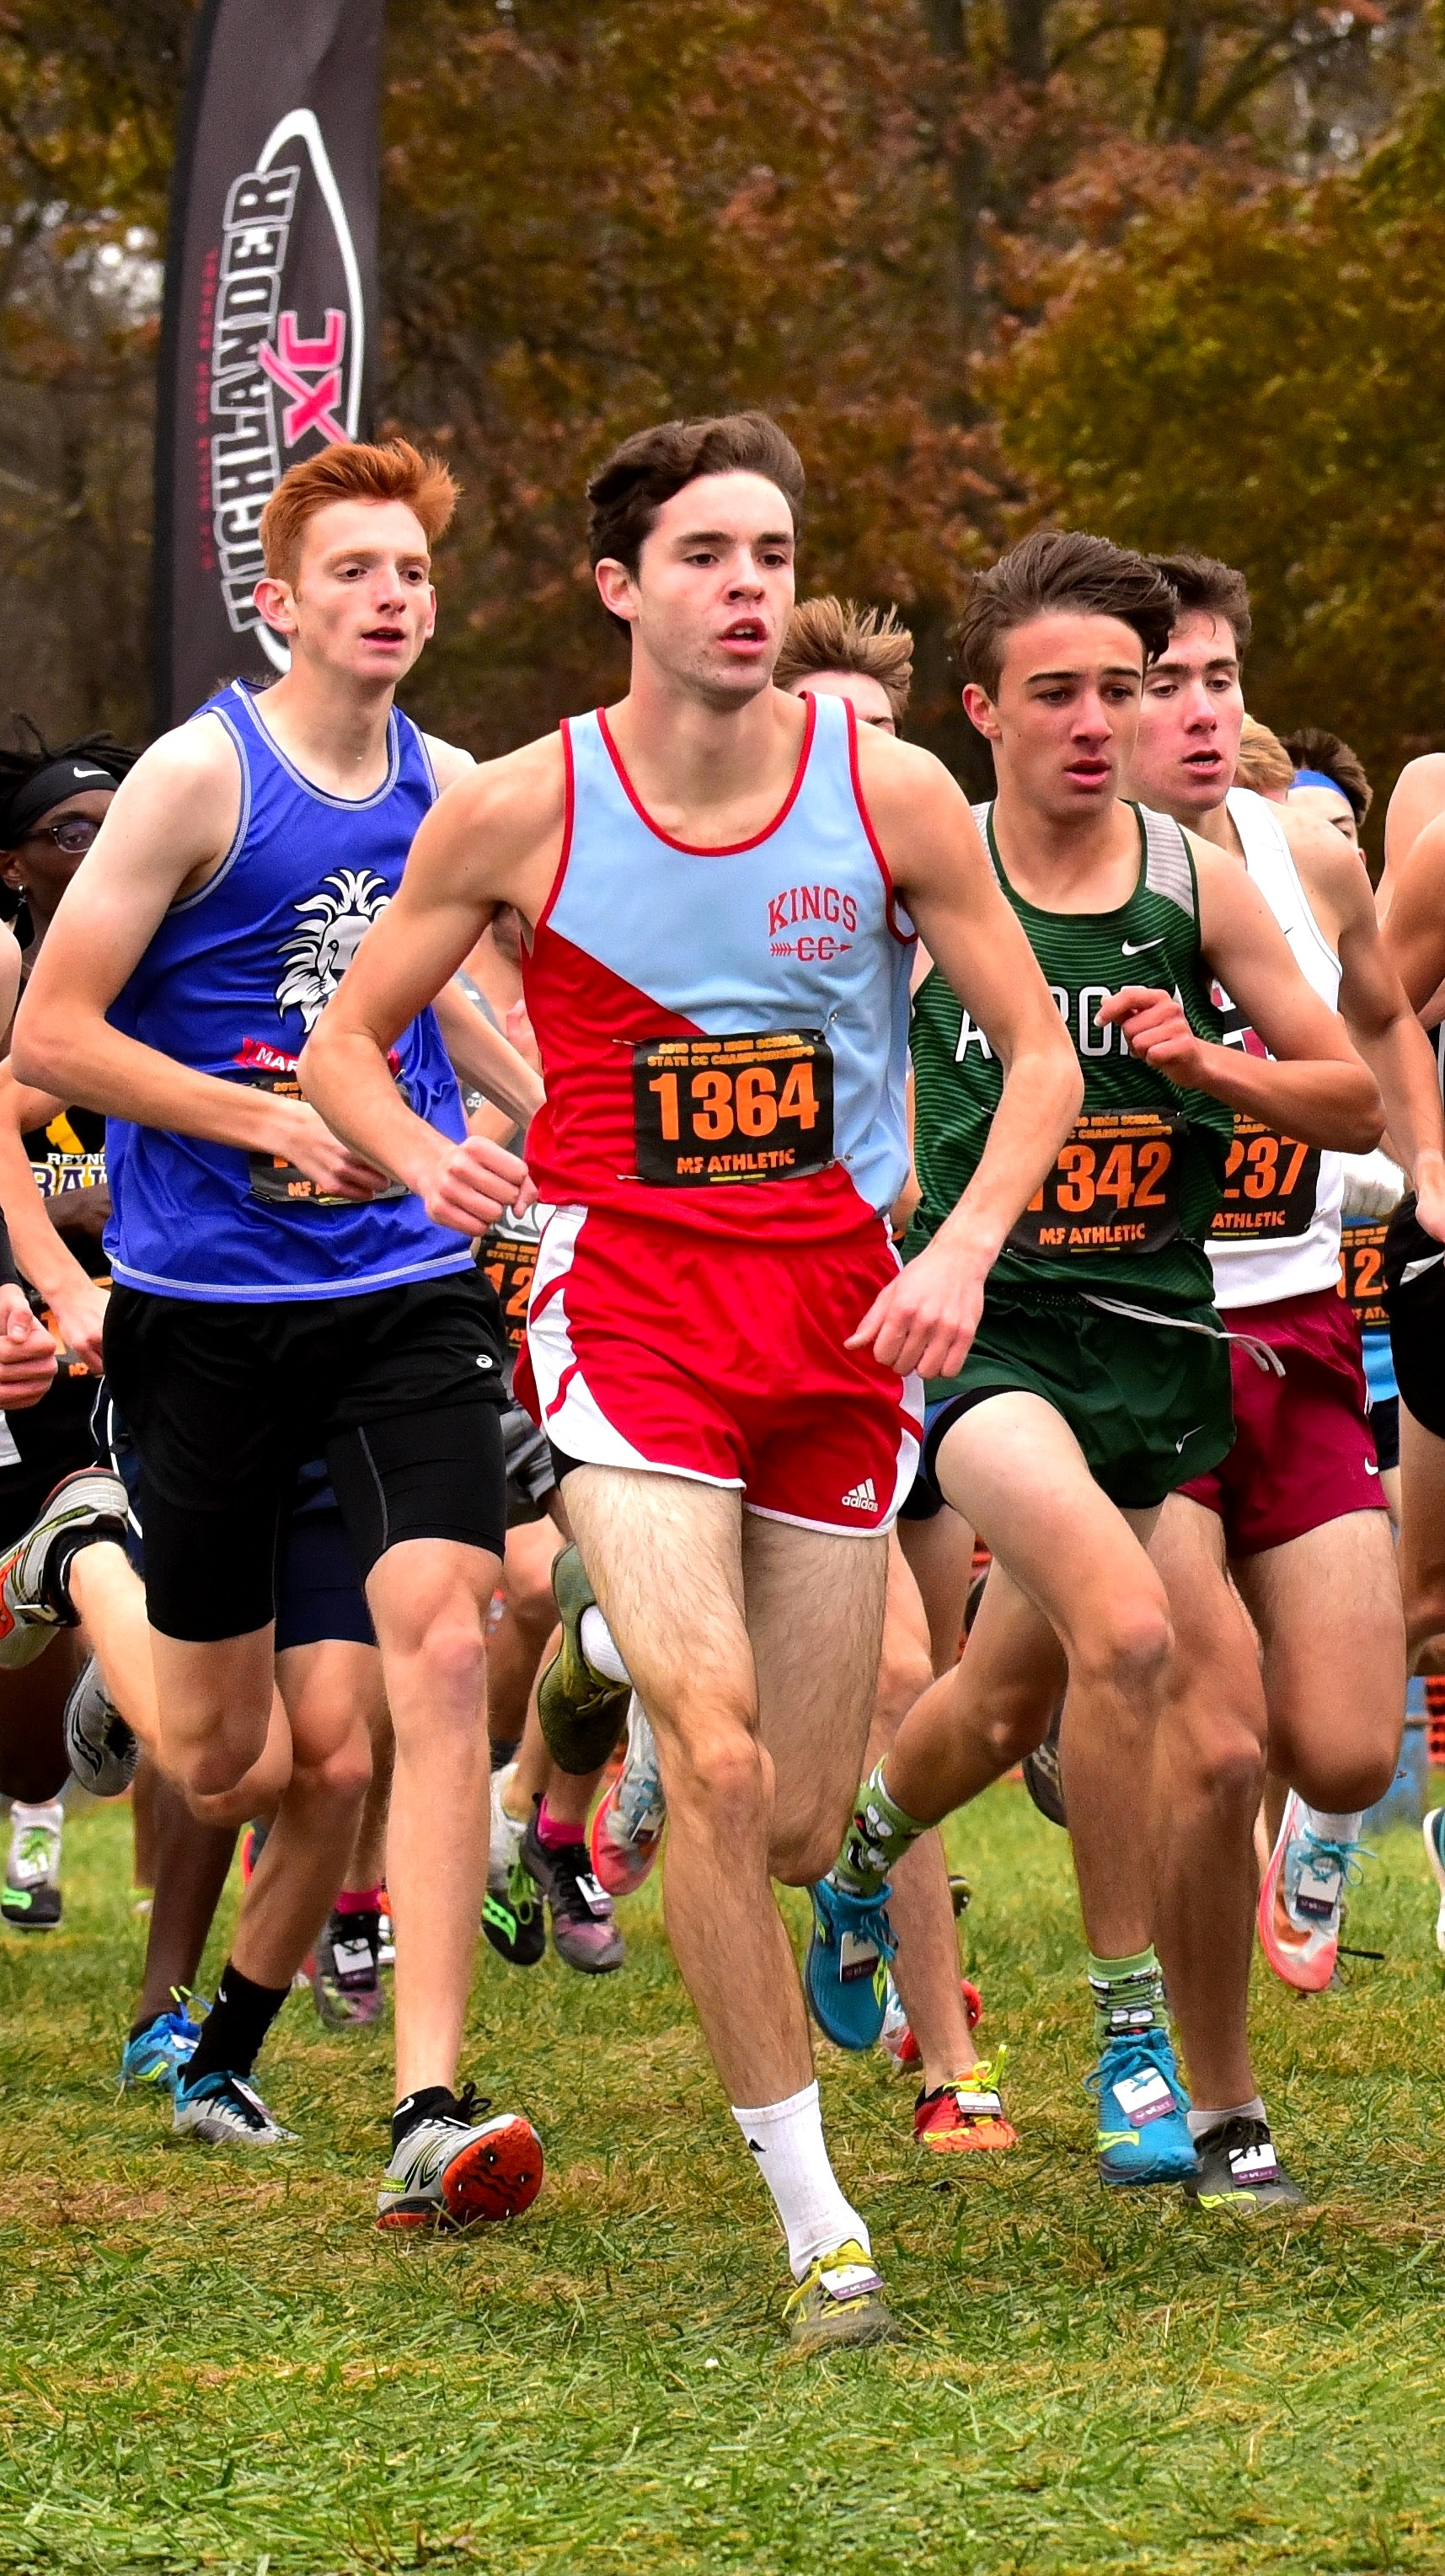 2019 OHSAA State Cross Country Championships